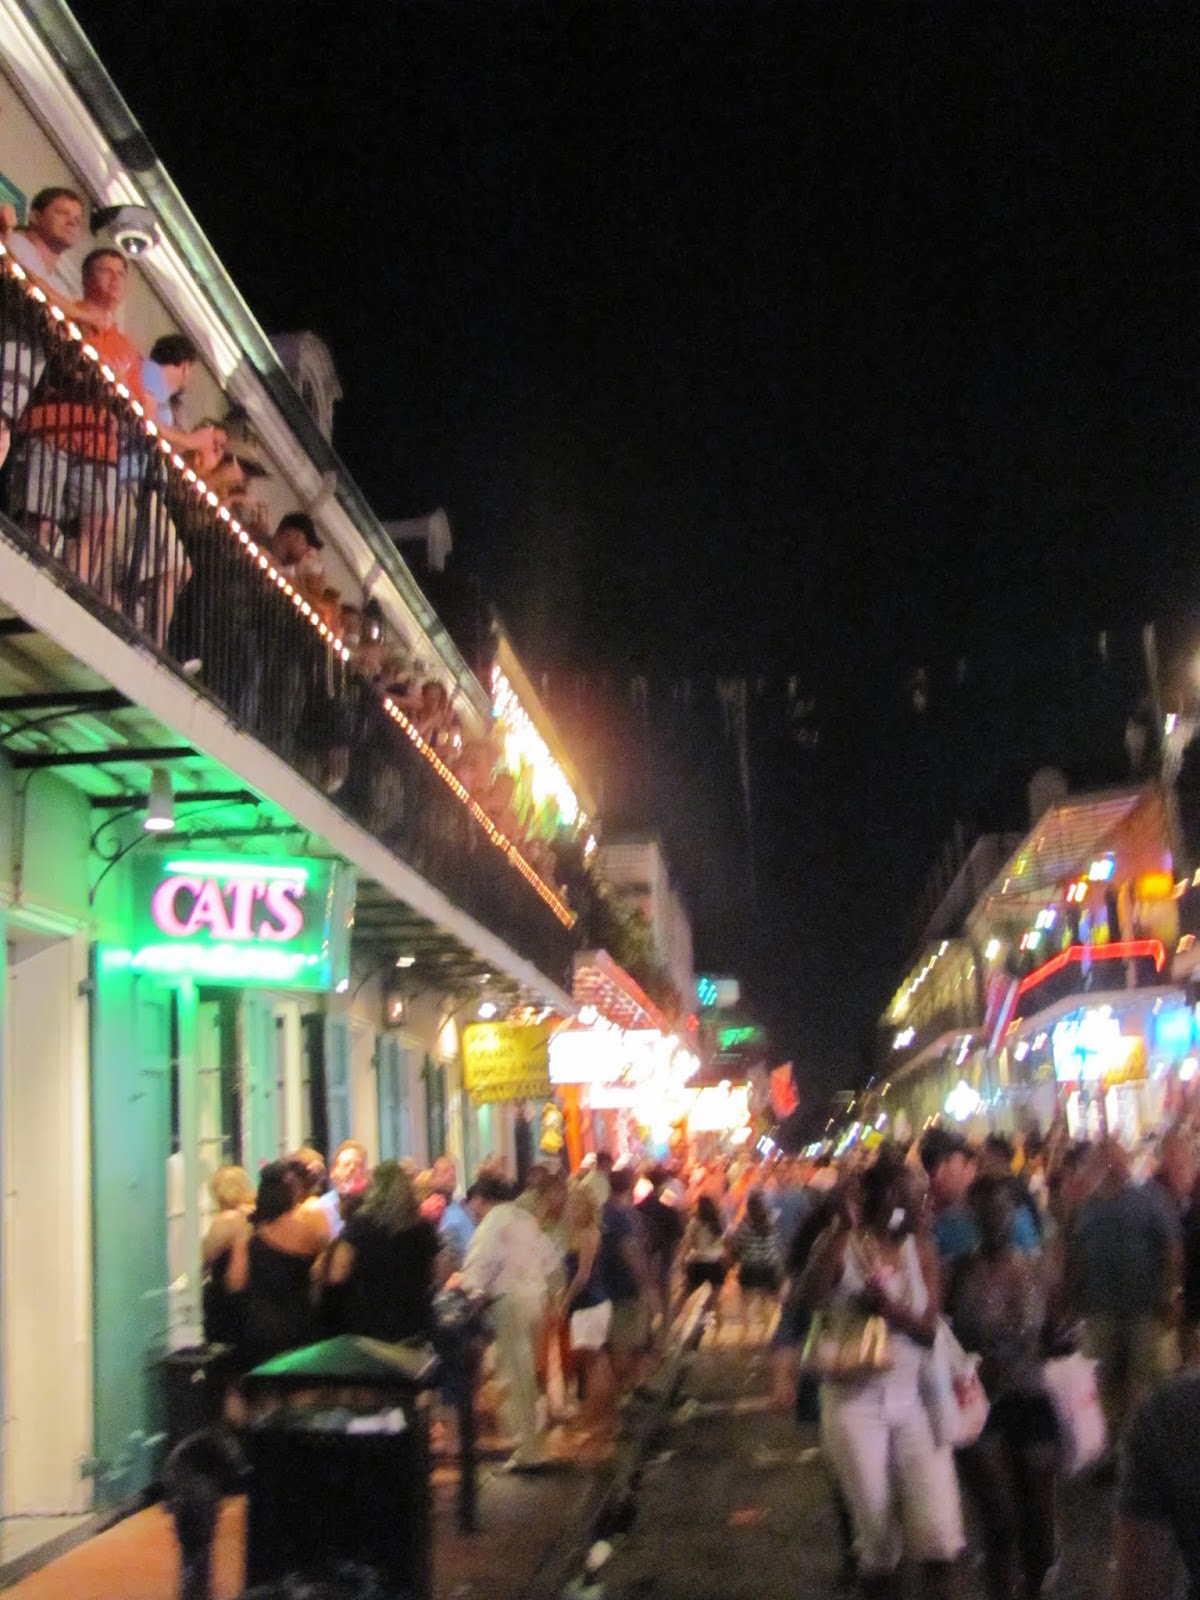 A shot of Bourbon Street in New Orleans, LA at night